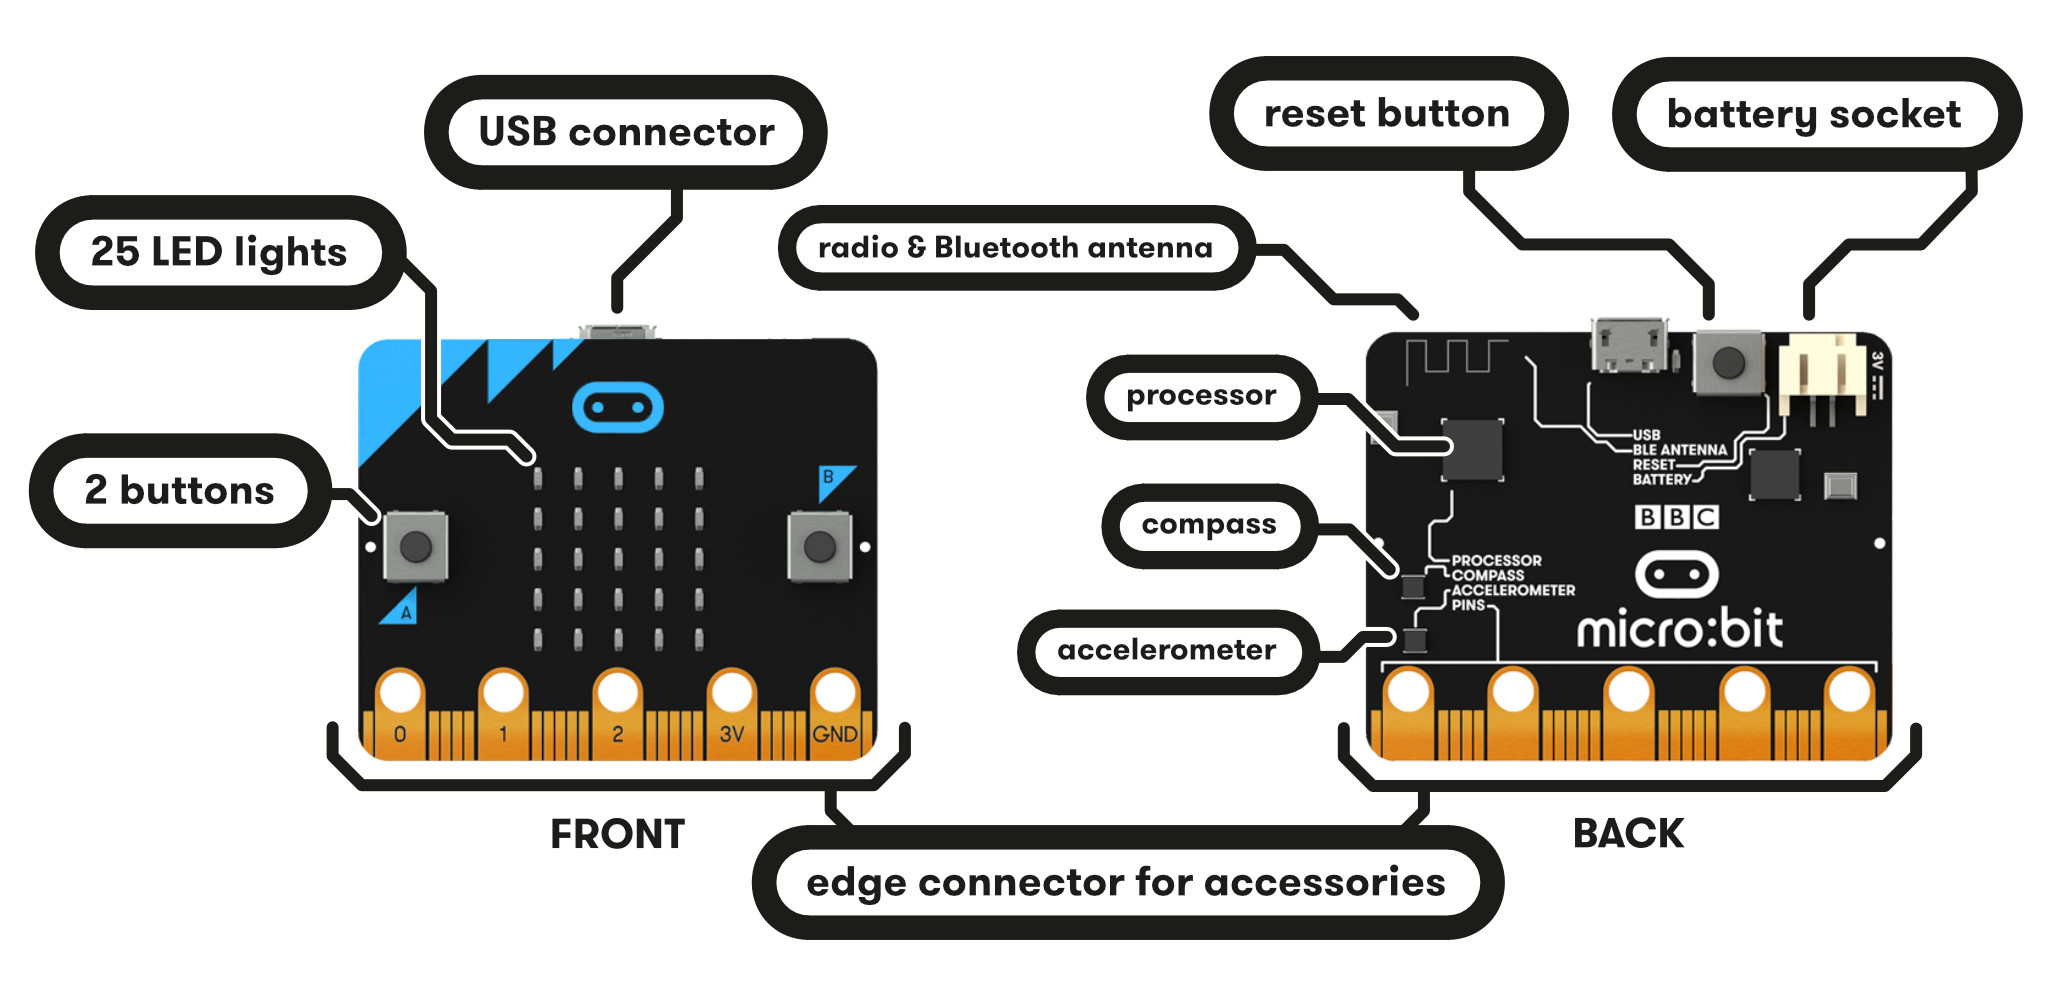 Hardware resources found on Micro:bit -- from microbit.org